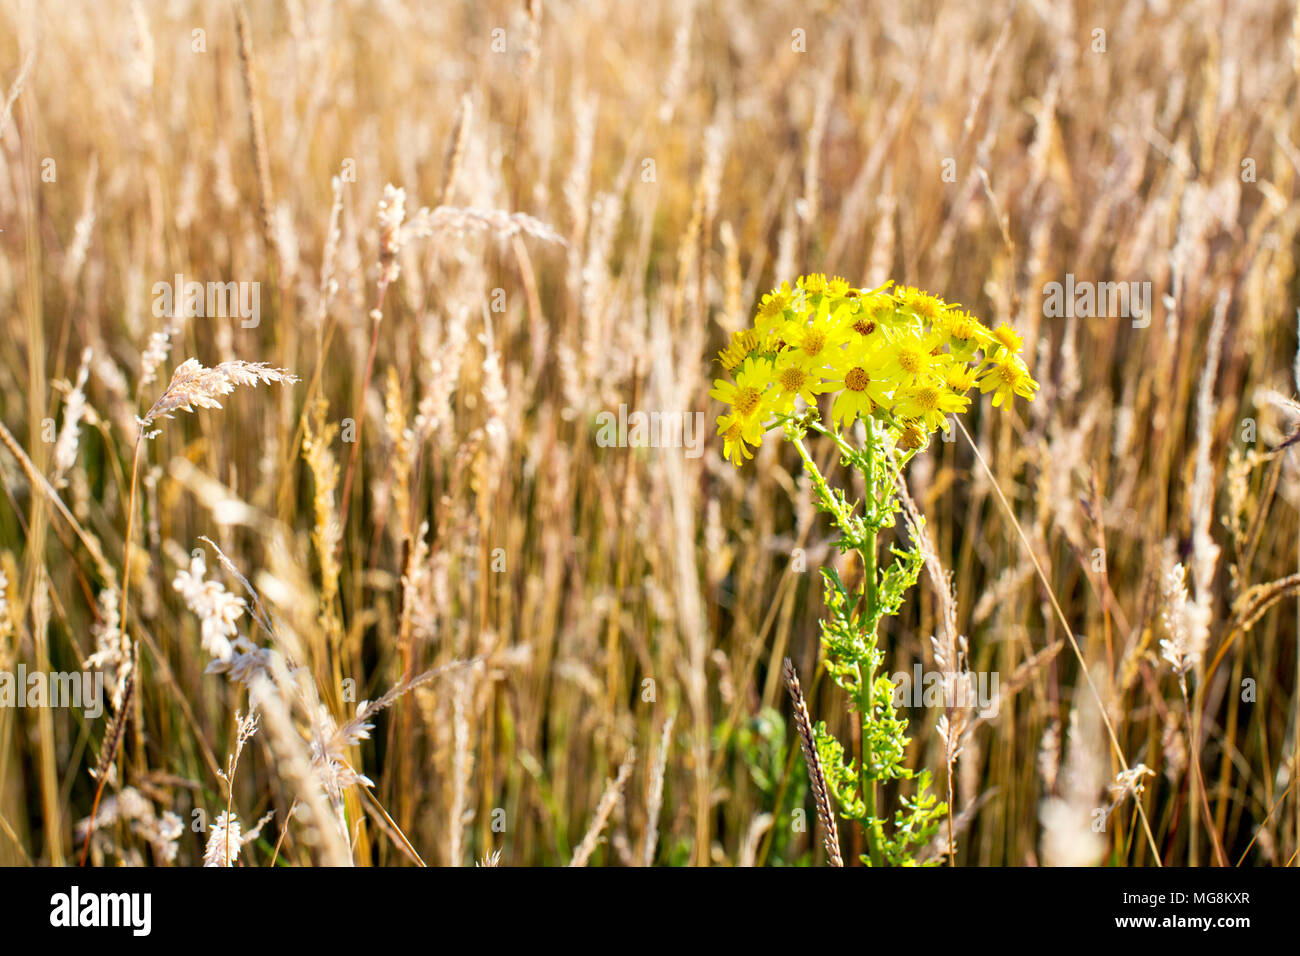 Yellow daisies in a field of wheat. Chilterns, Buckinghamshire, England, United Kingdom - Stock Image